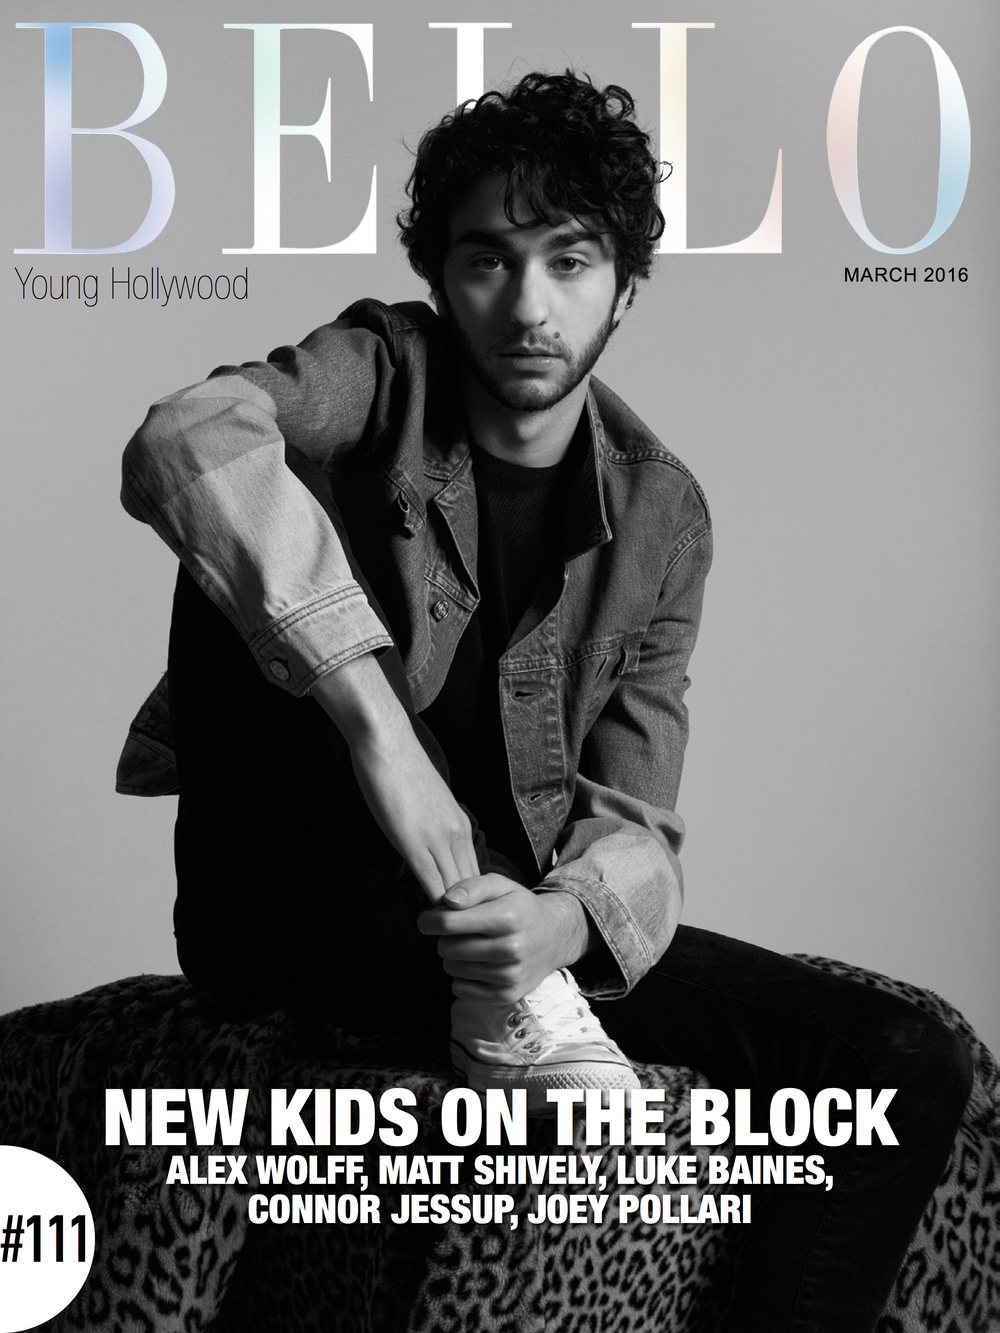 Alex Wolff by Jason Rodgers for Bello Magazine